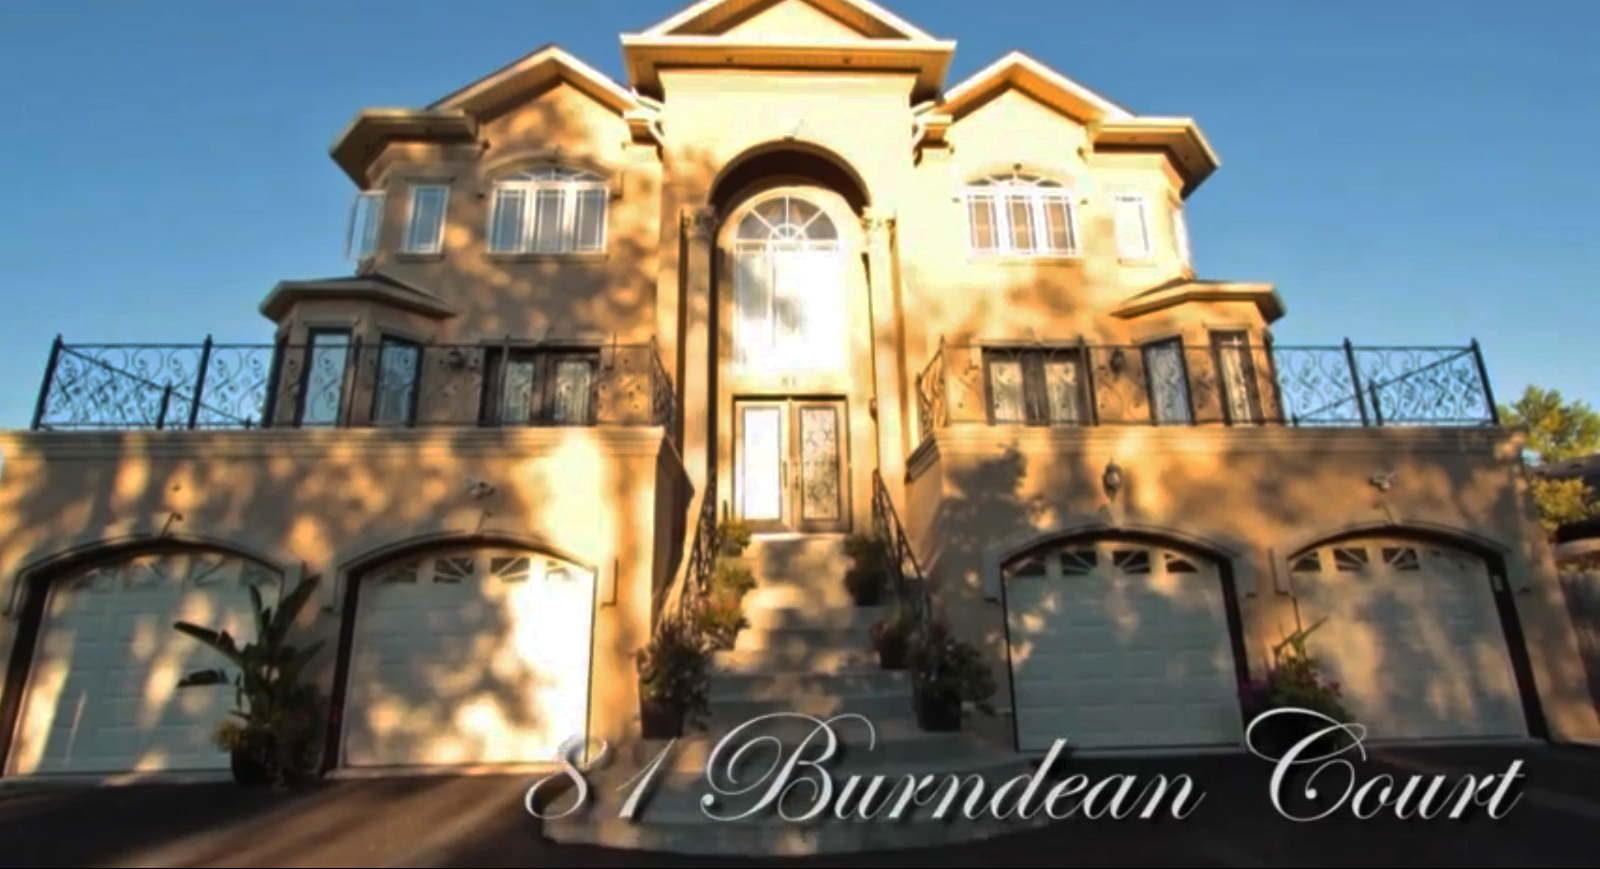 Executive Custom Built Home – 81 Burndean Court